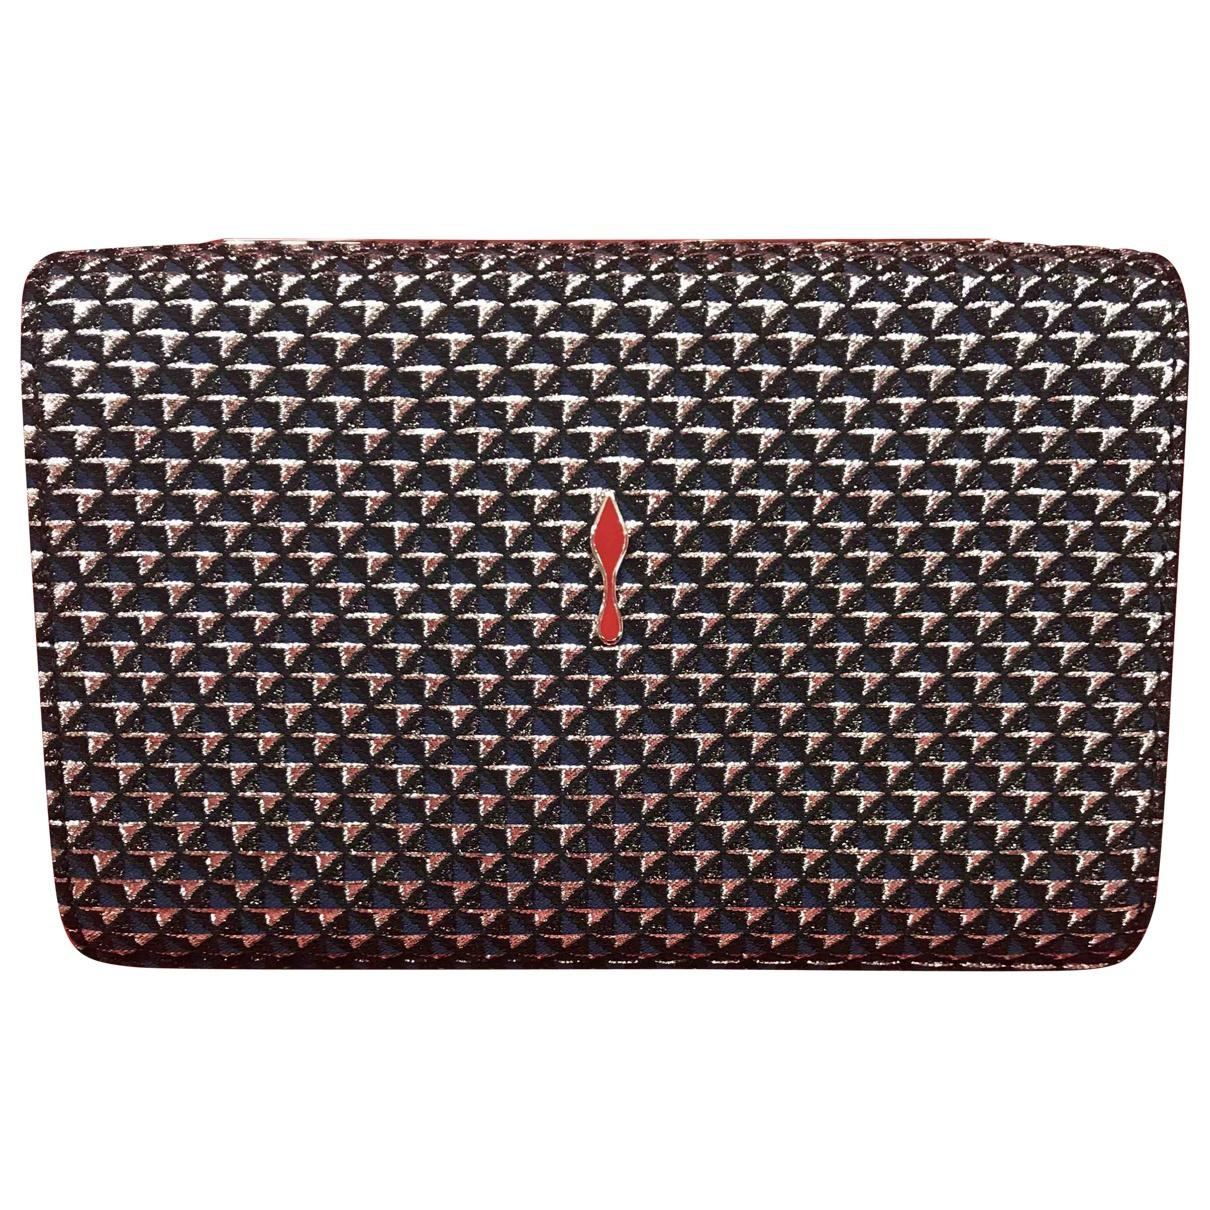 Christian Louboutin Pre-owned - POUCHES QMg7fwOj